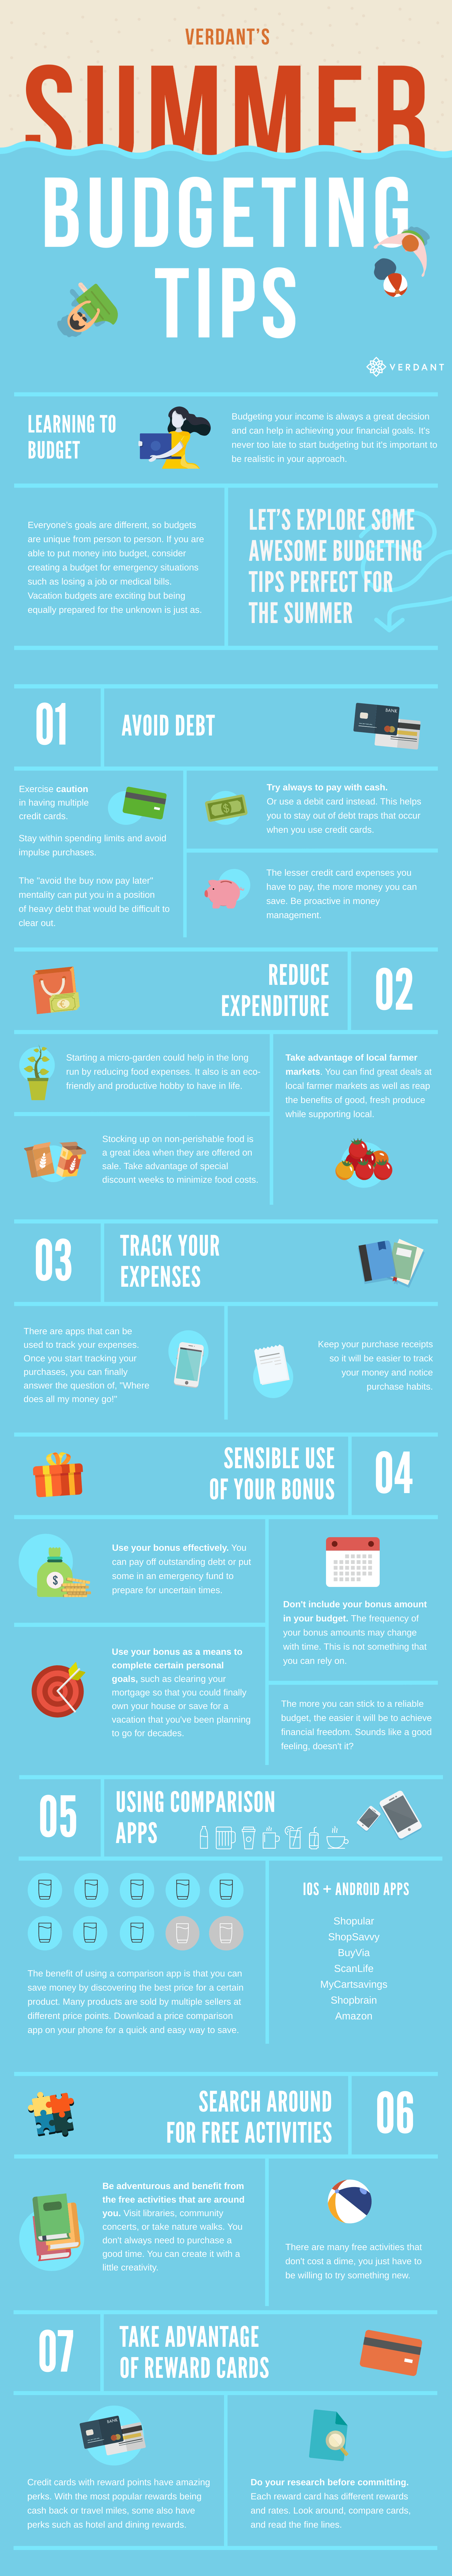 Summer budgeting tips